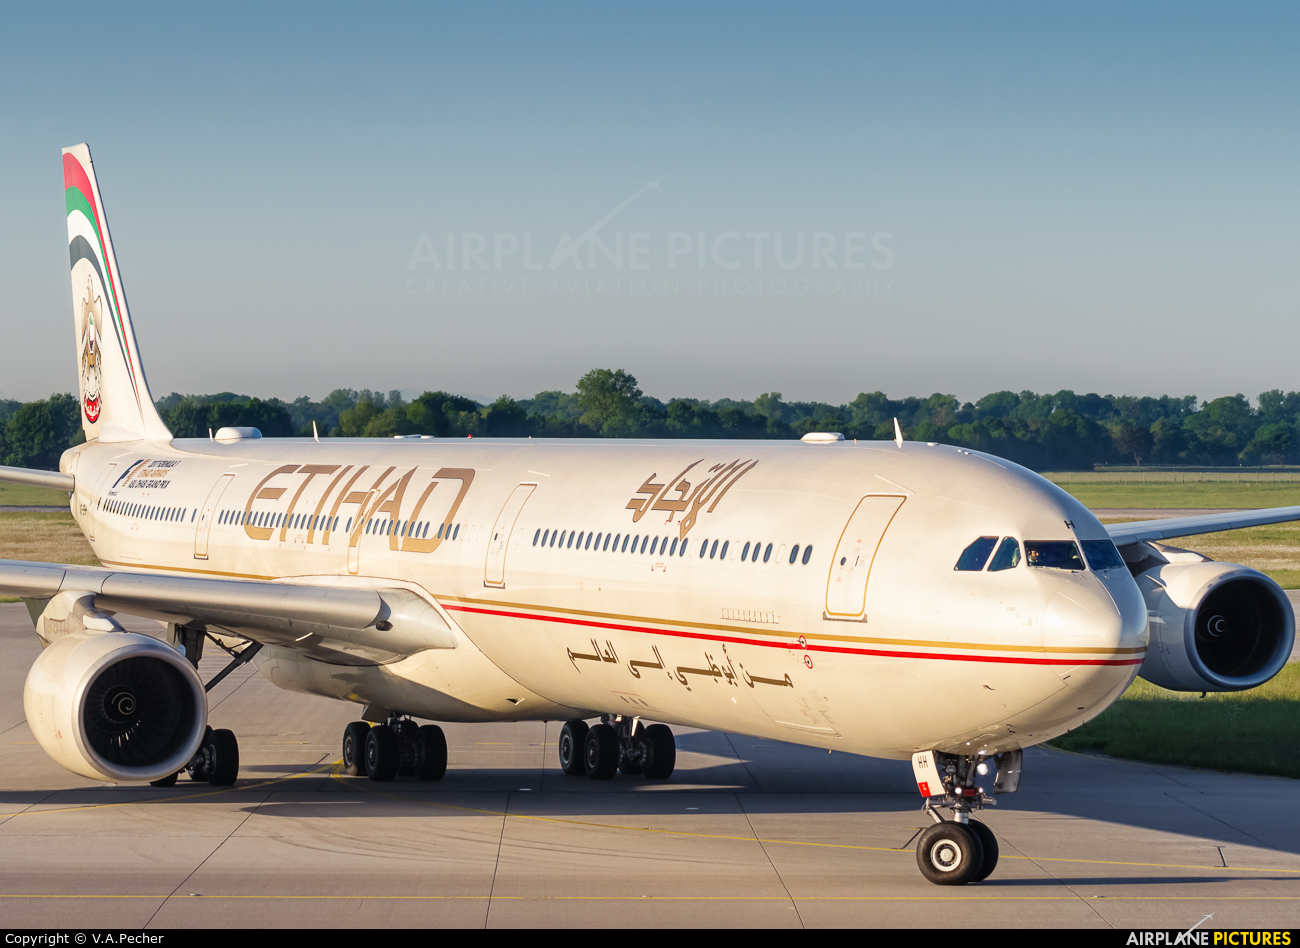 Etihad Airways A6-EHH aircraft at Munich